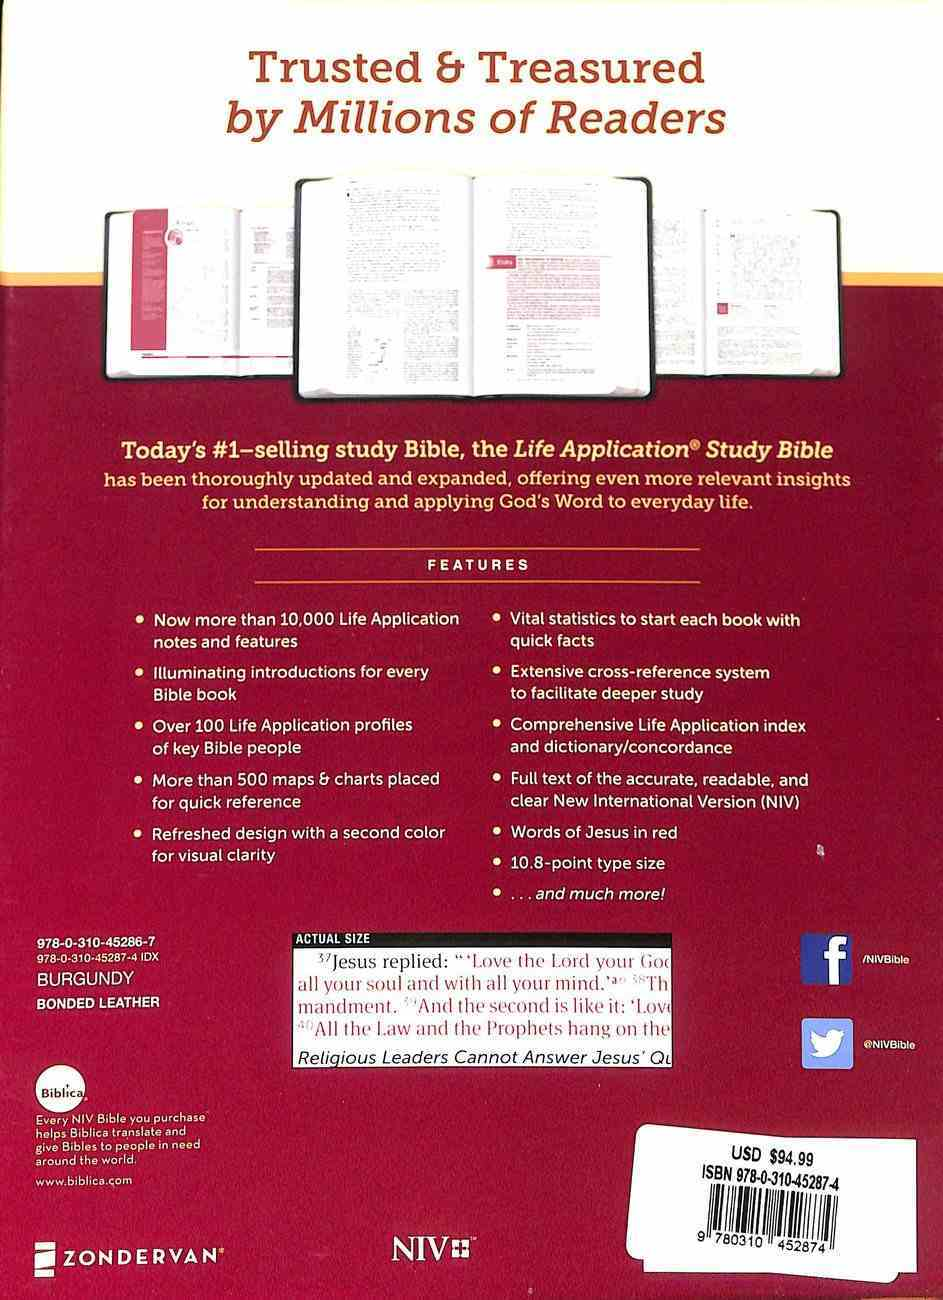 NIV Life Application Study Bible Third Edition Large Print Burgundy Indexed (Red Letter Edition) Bonded Leather